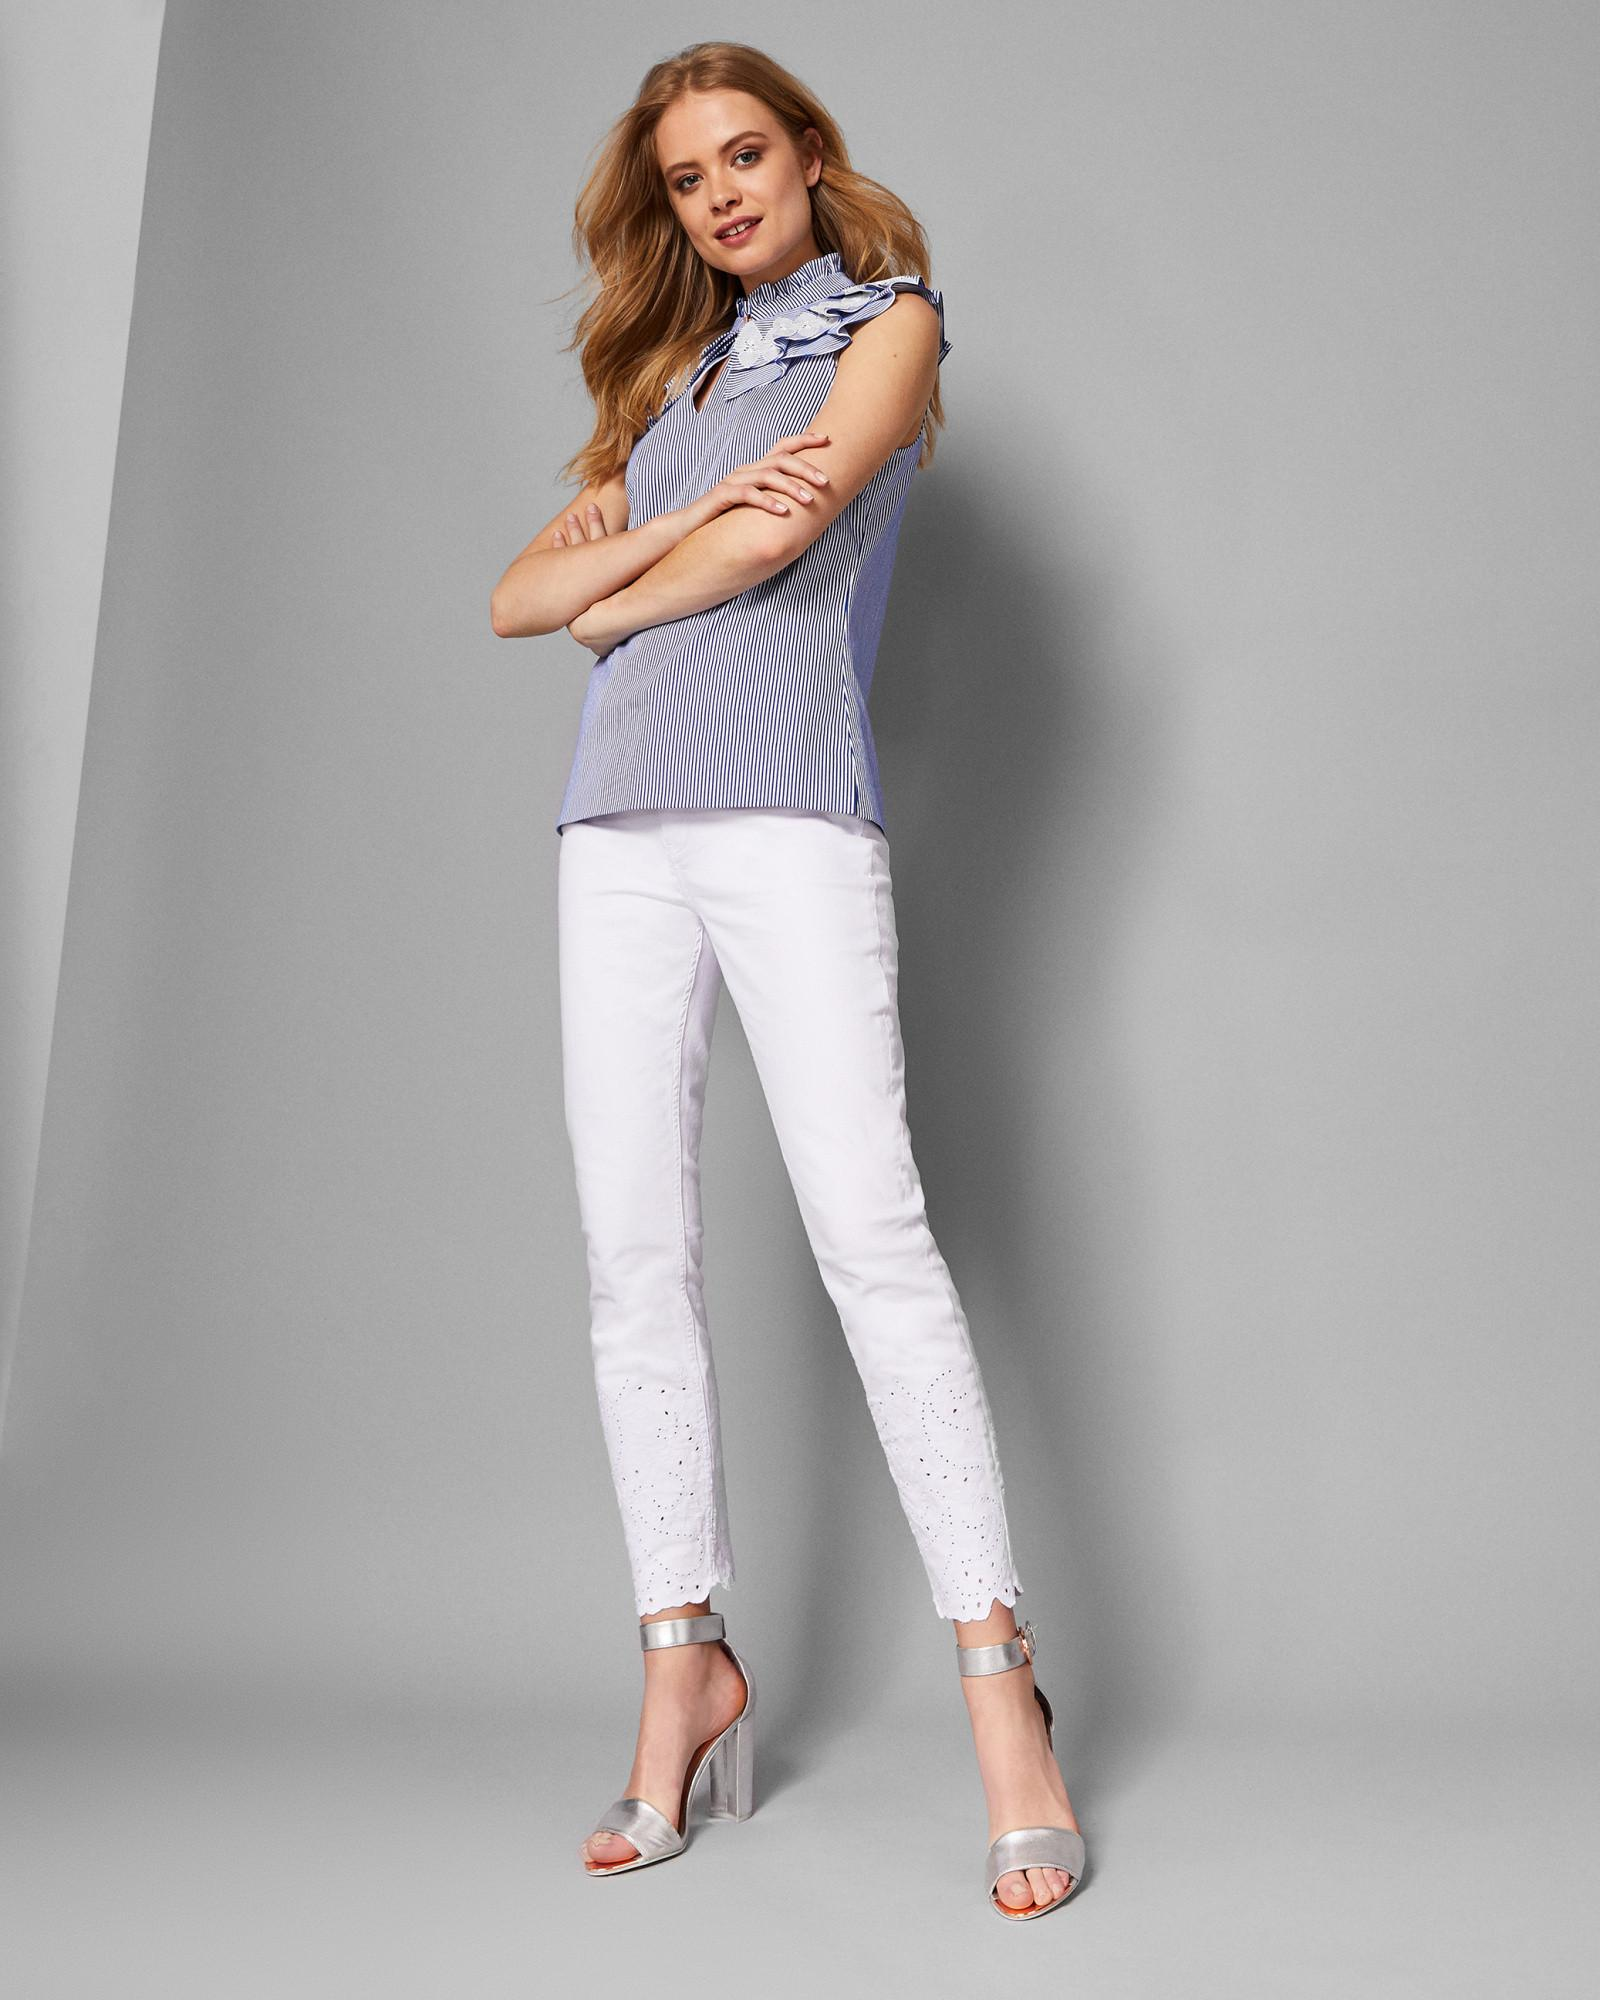 2799c0e9419dac Lyst - Ted Baker Embroidered Hem Skinny Jeans in White